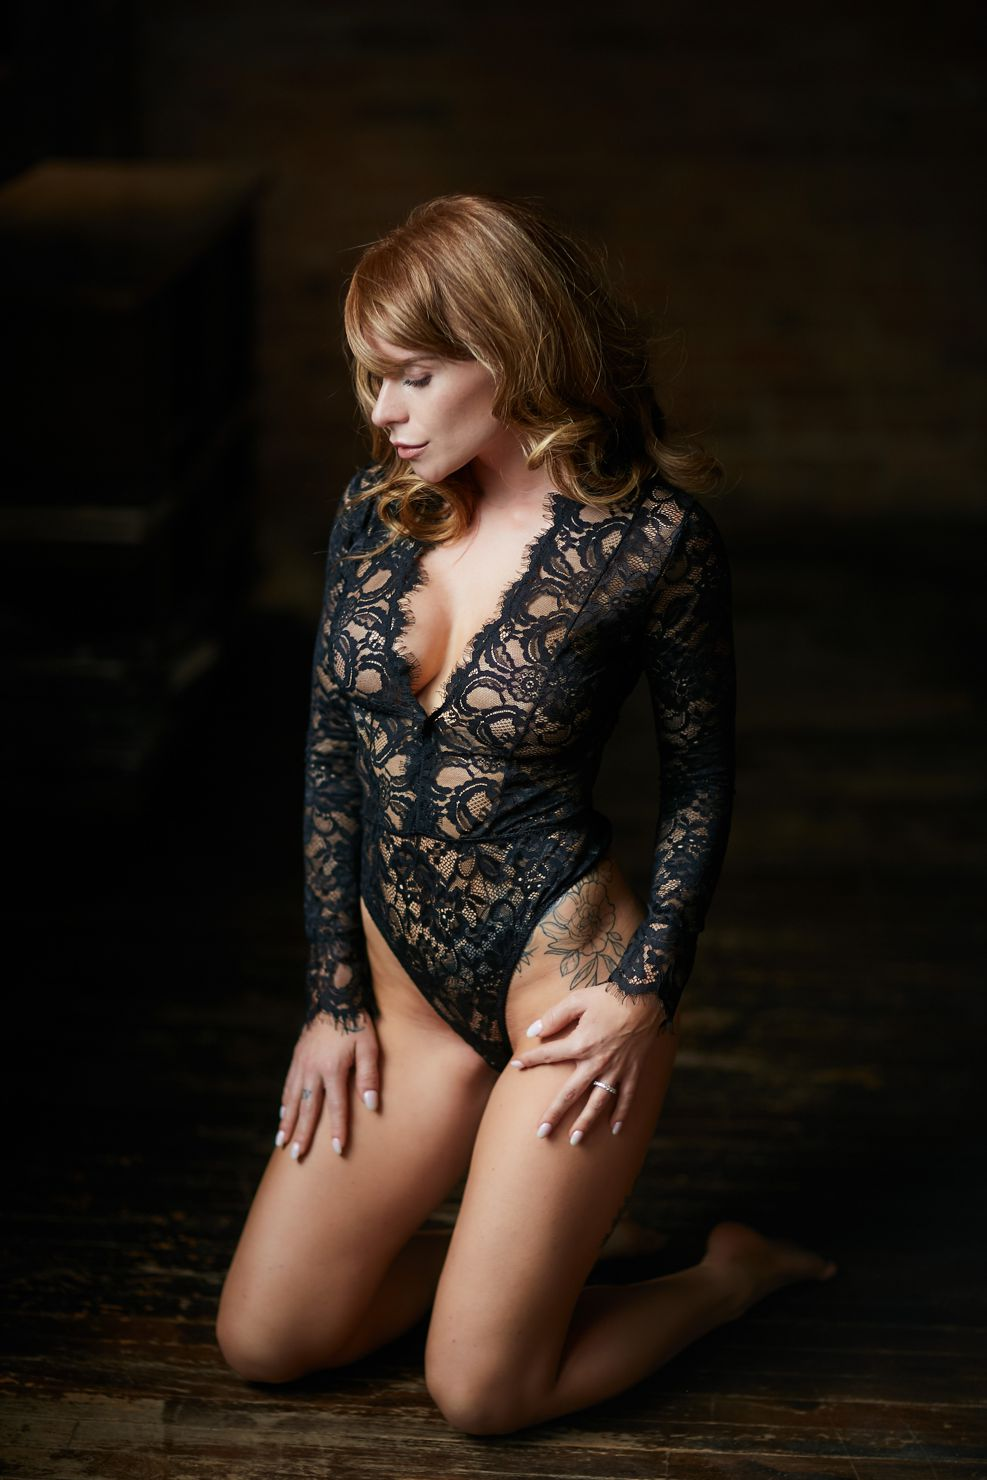 chicago sensual boudoir photography - A Gift for Her - Perfect birthday, wedding or anniversary gift.